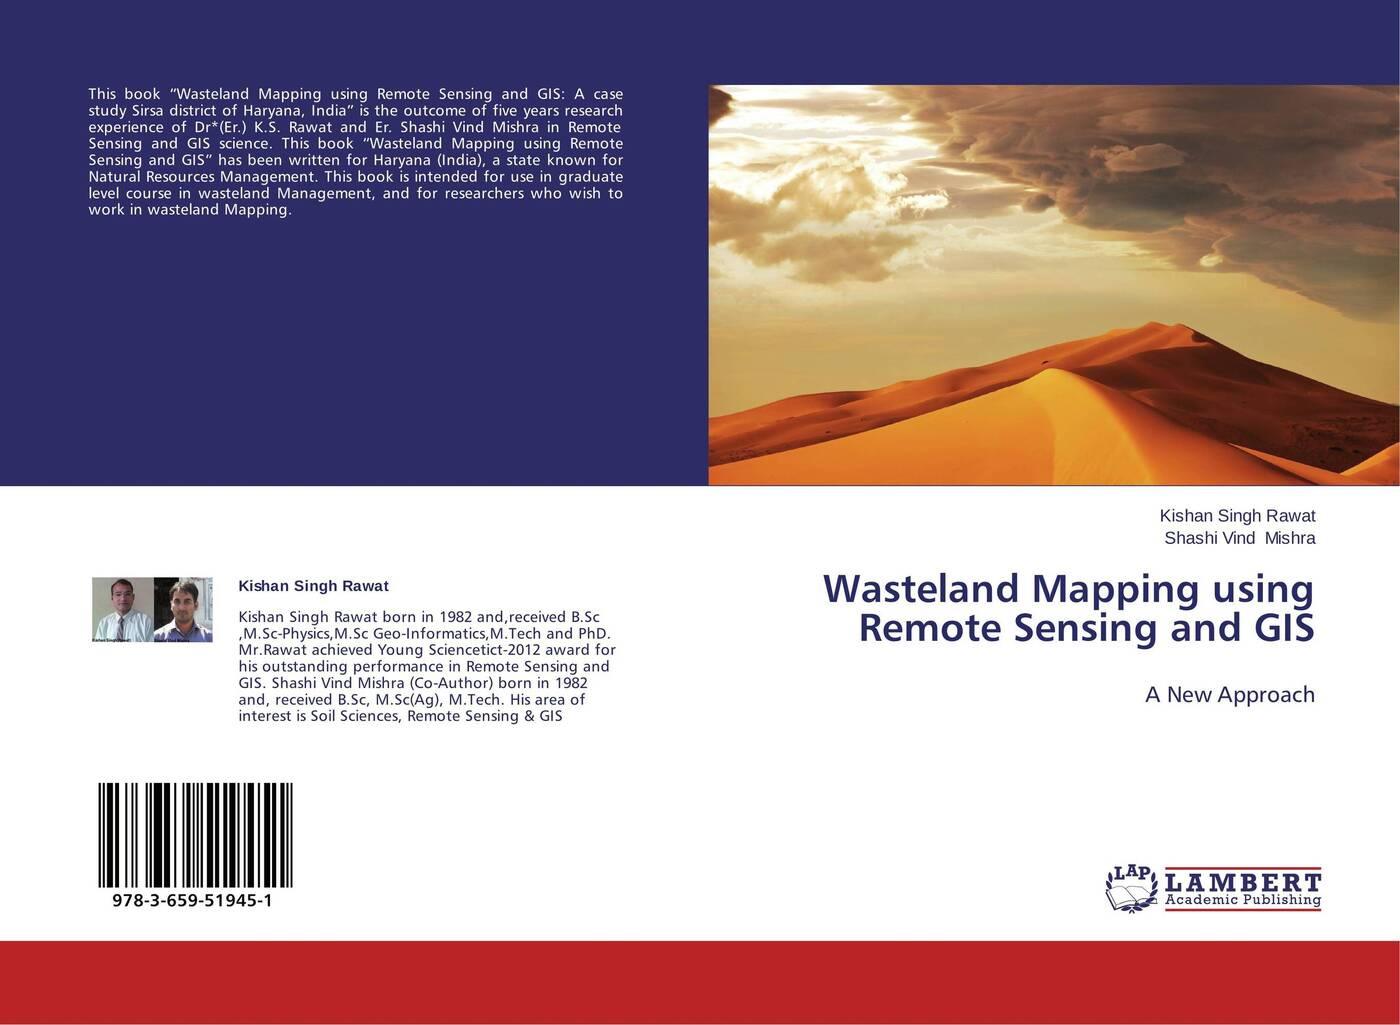 Kishan Singh Rawat and Shashi Vind Mishra Wasteland Mapping using Remote Sensing and GIS michael demers n gis for dummies